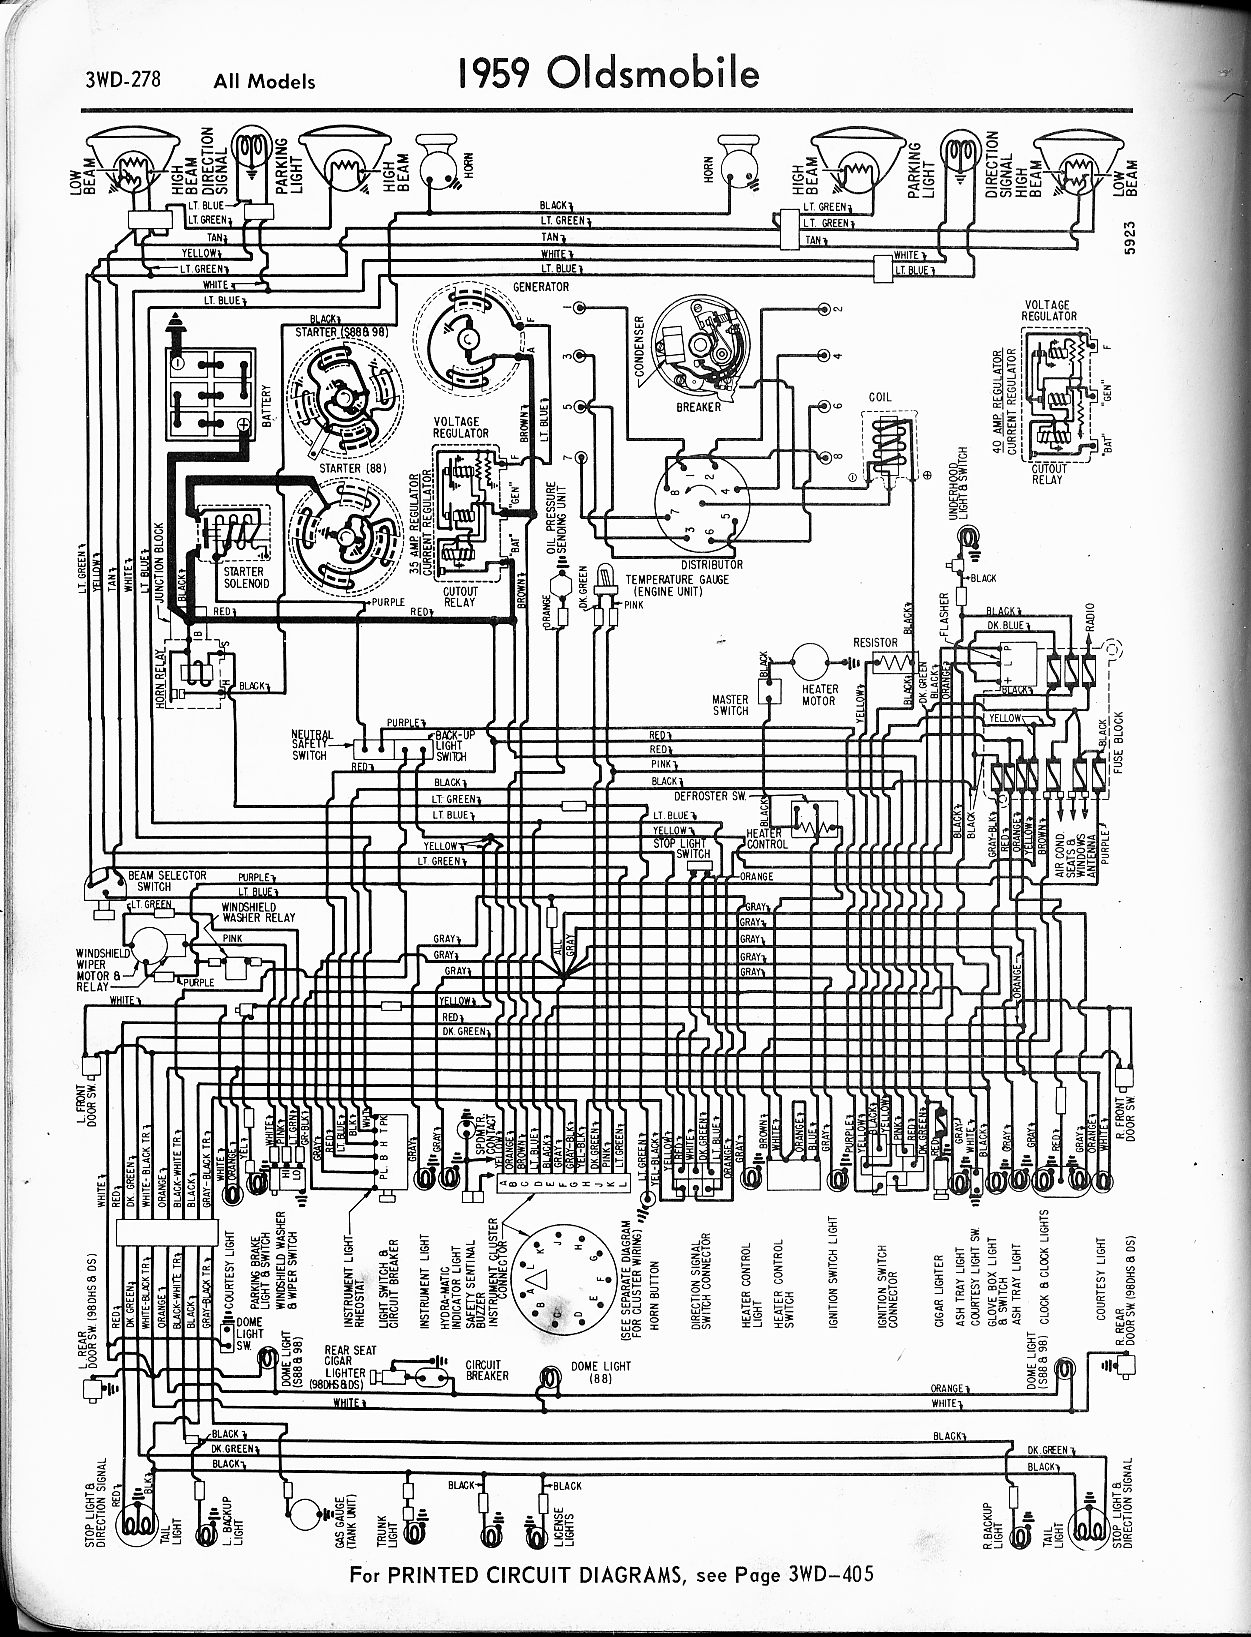 5b8f1 oldsmobile cutlass ciera fuse box diagram | wiring resources  wiring resources